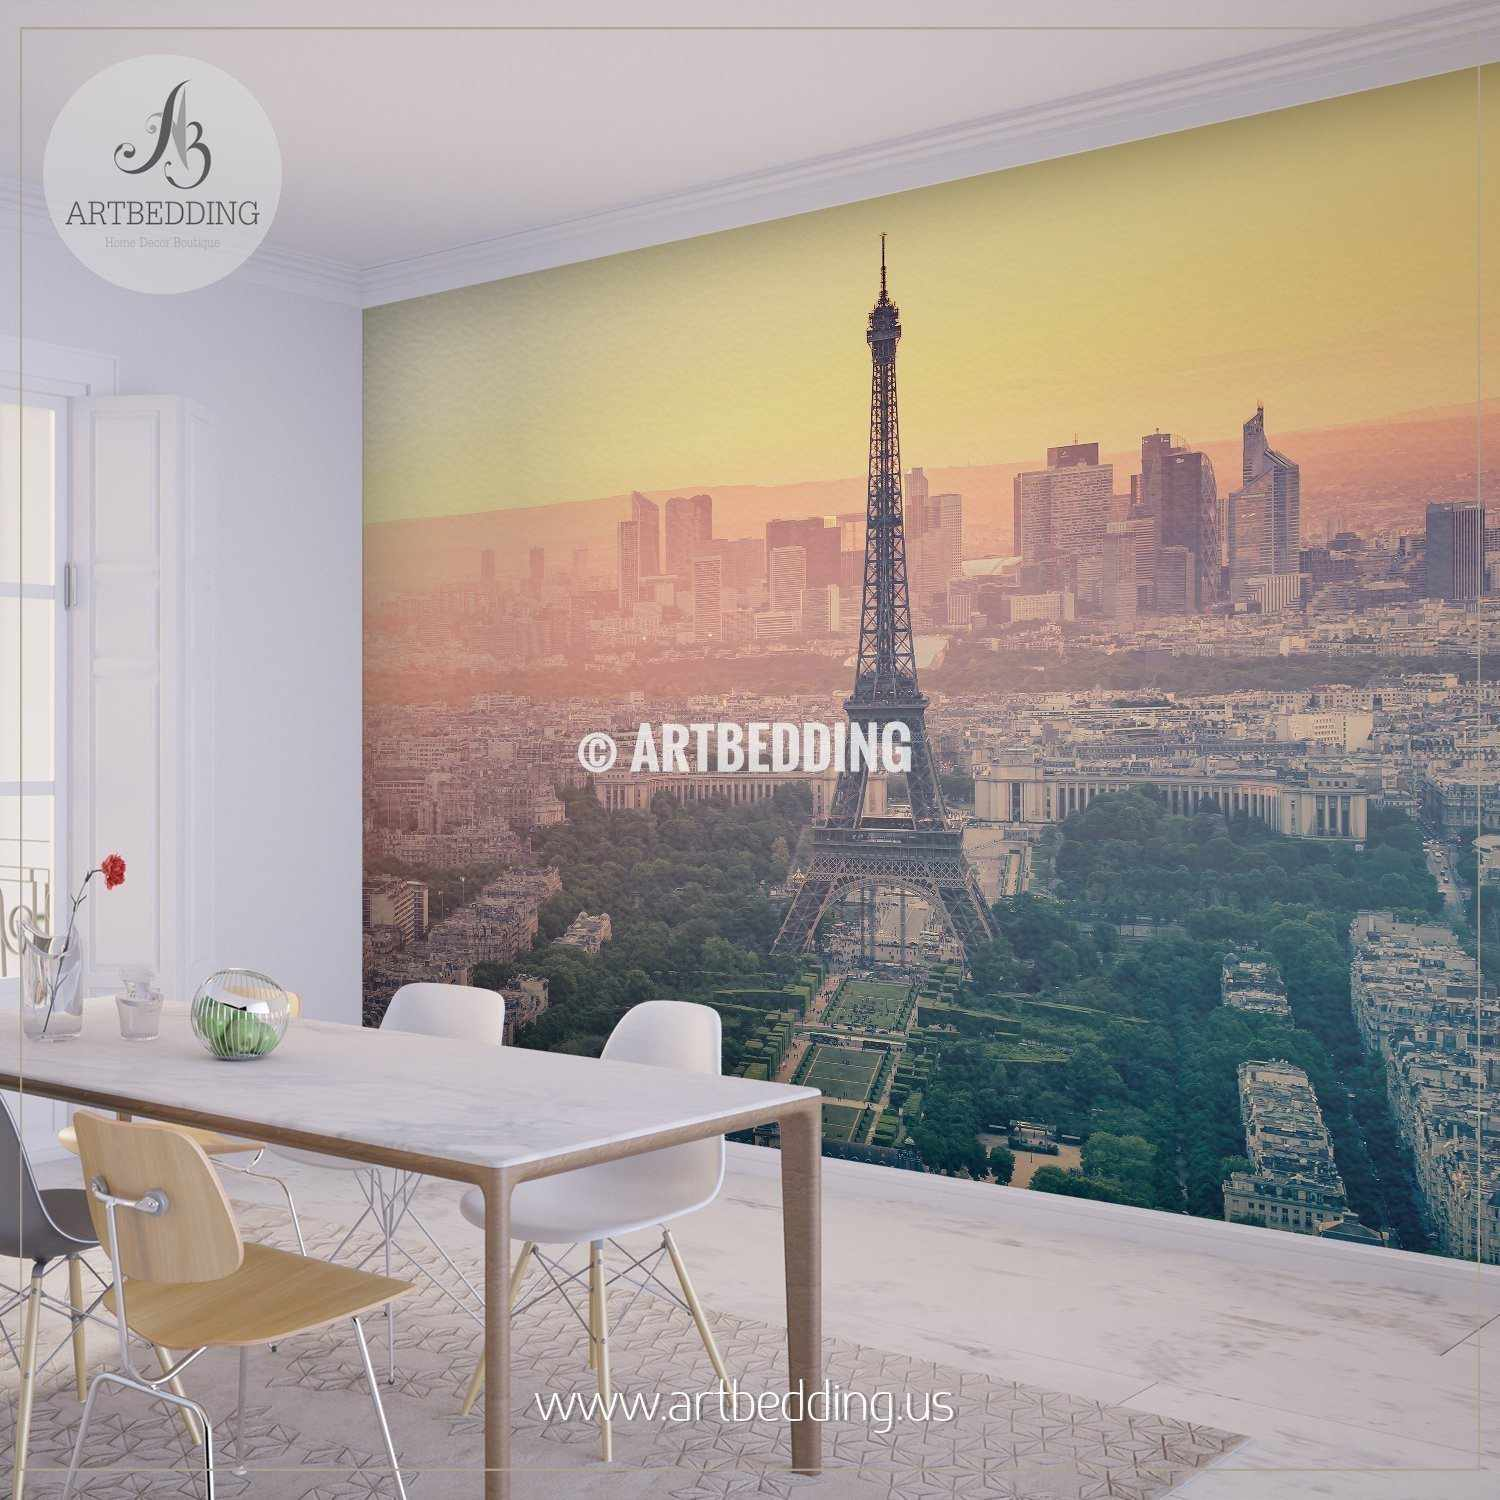 ... Paris City Skyline At Sunset With The Eiffel Tower Wall Mural, Photo  Mural, Wall ... Part 58